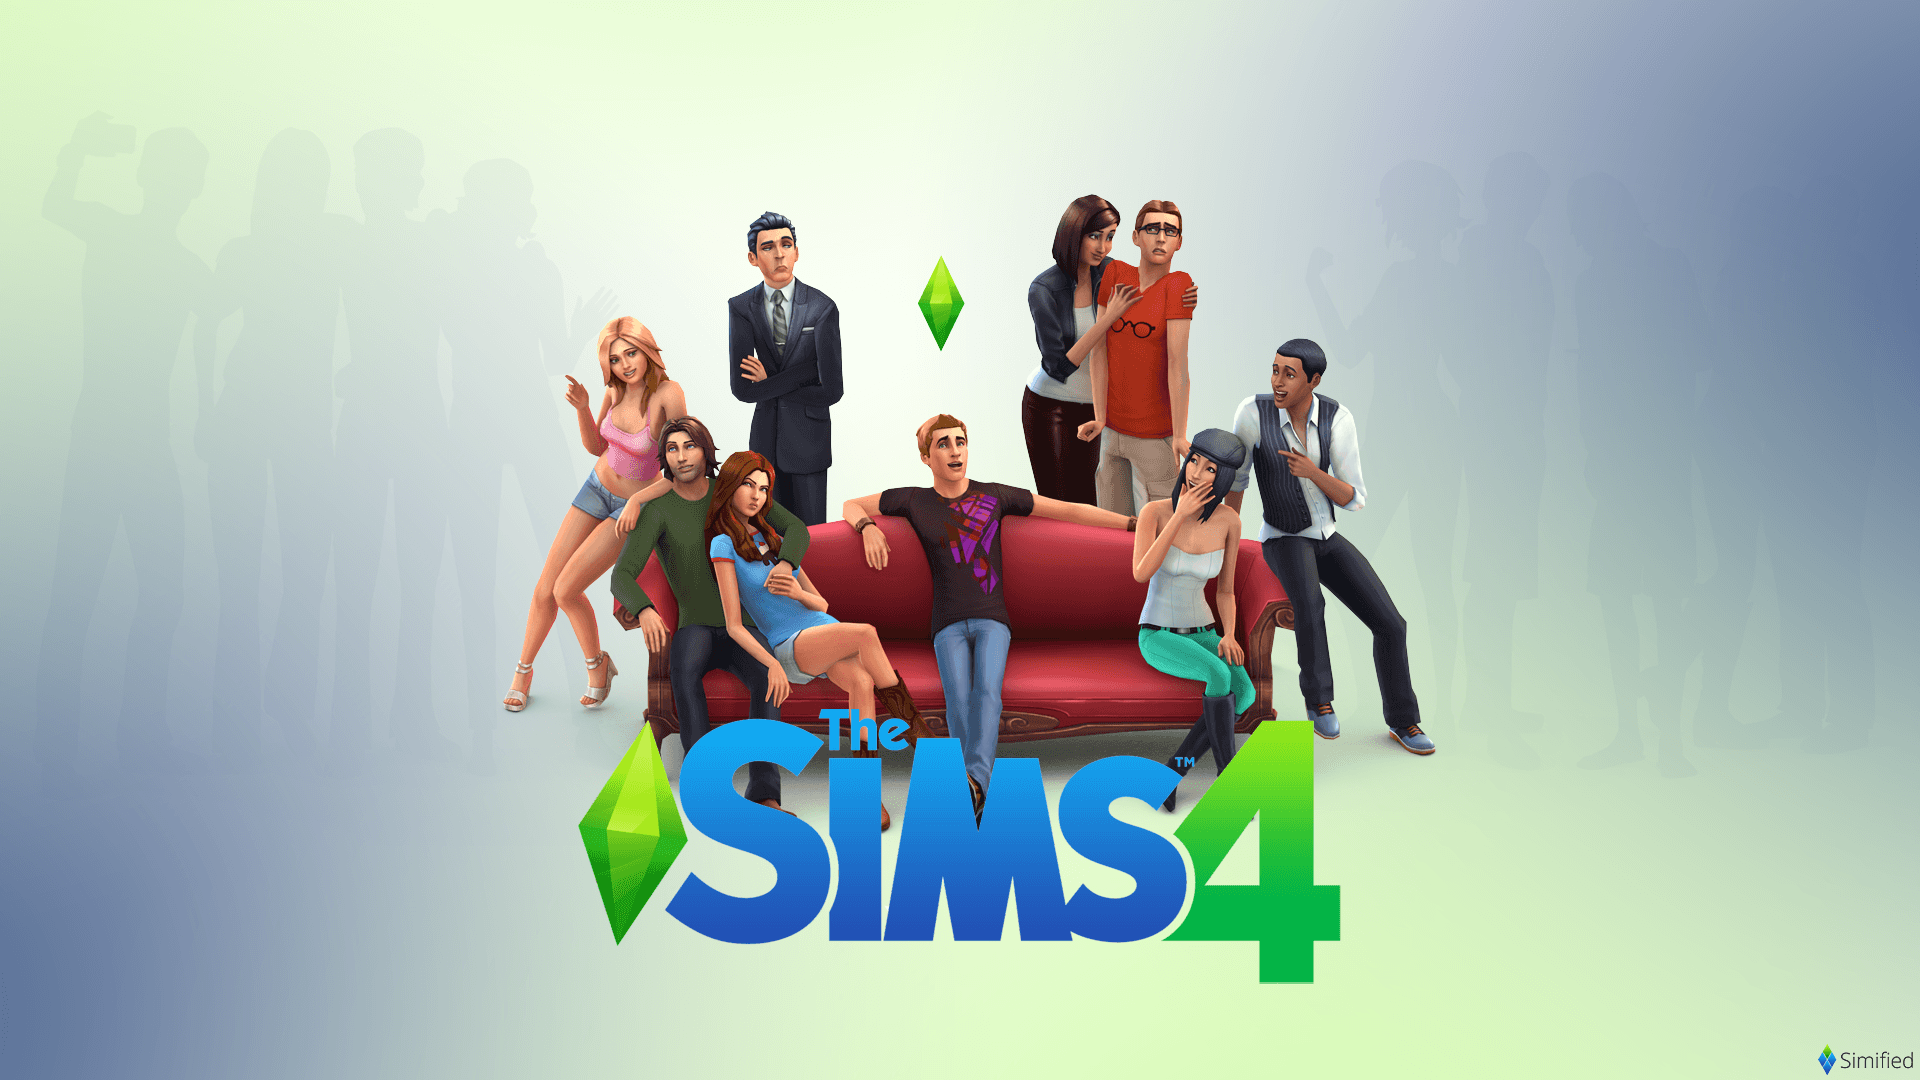 The Sims Wallpapers High Quality